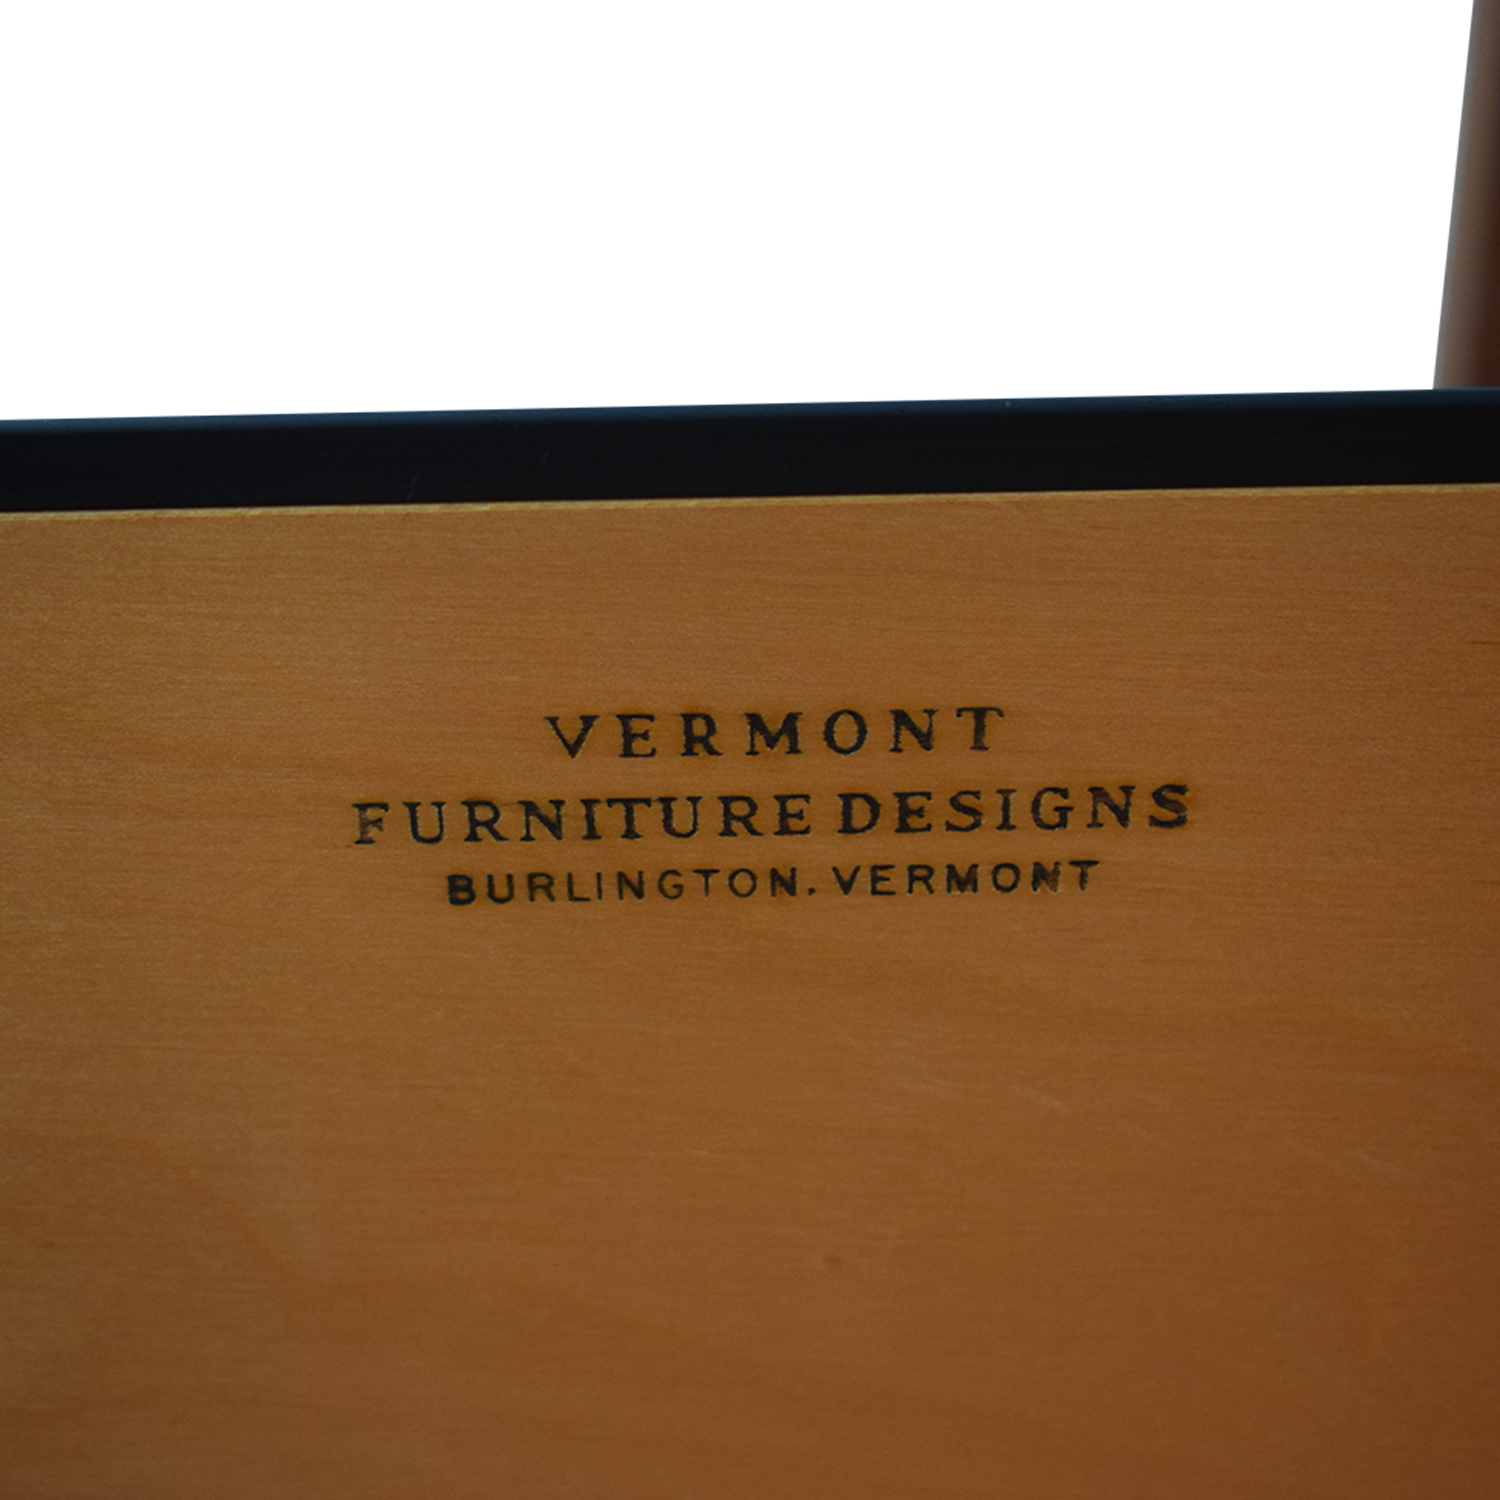 Vermont Furniture Designs Vermont Furniture Designs Shaker Two-Drawer with Keyboard Tray Desk Home Office Desks